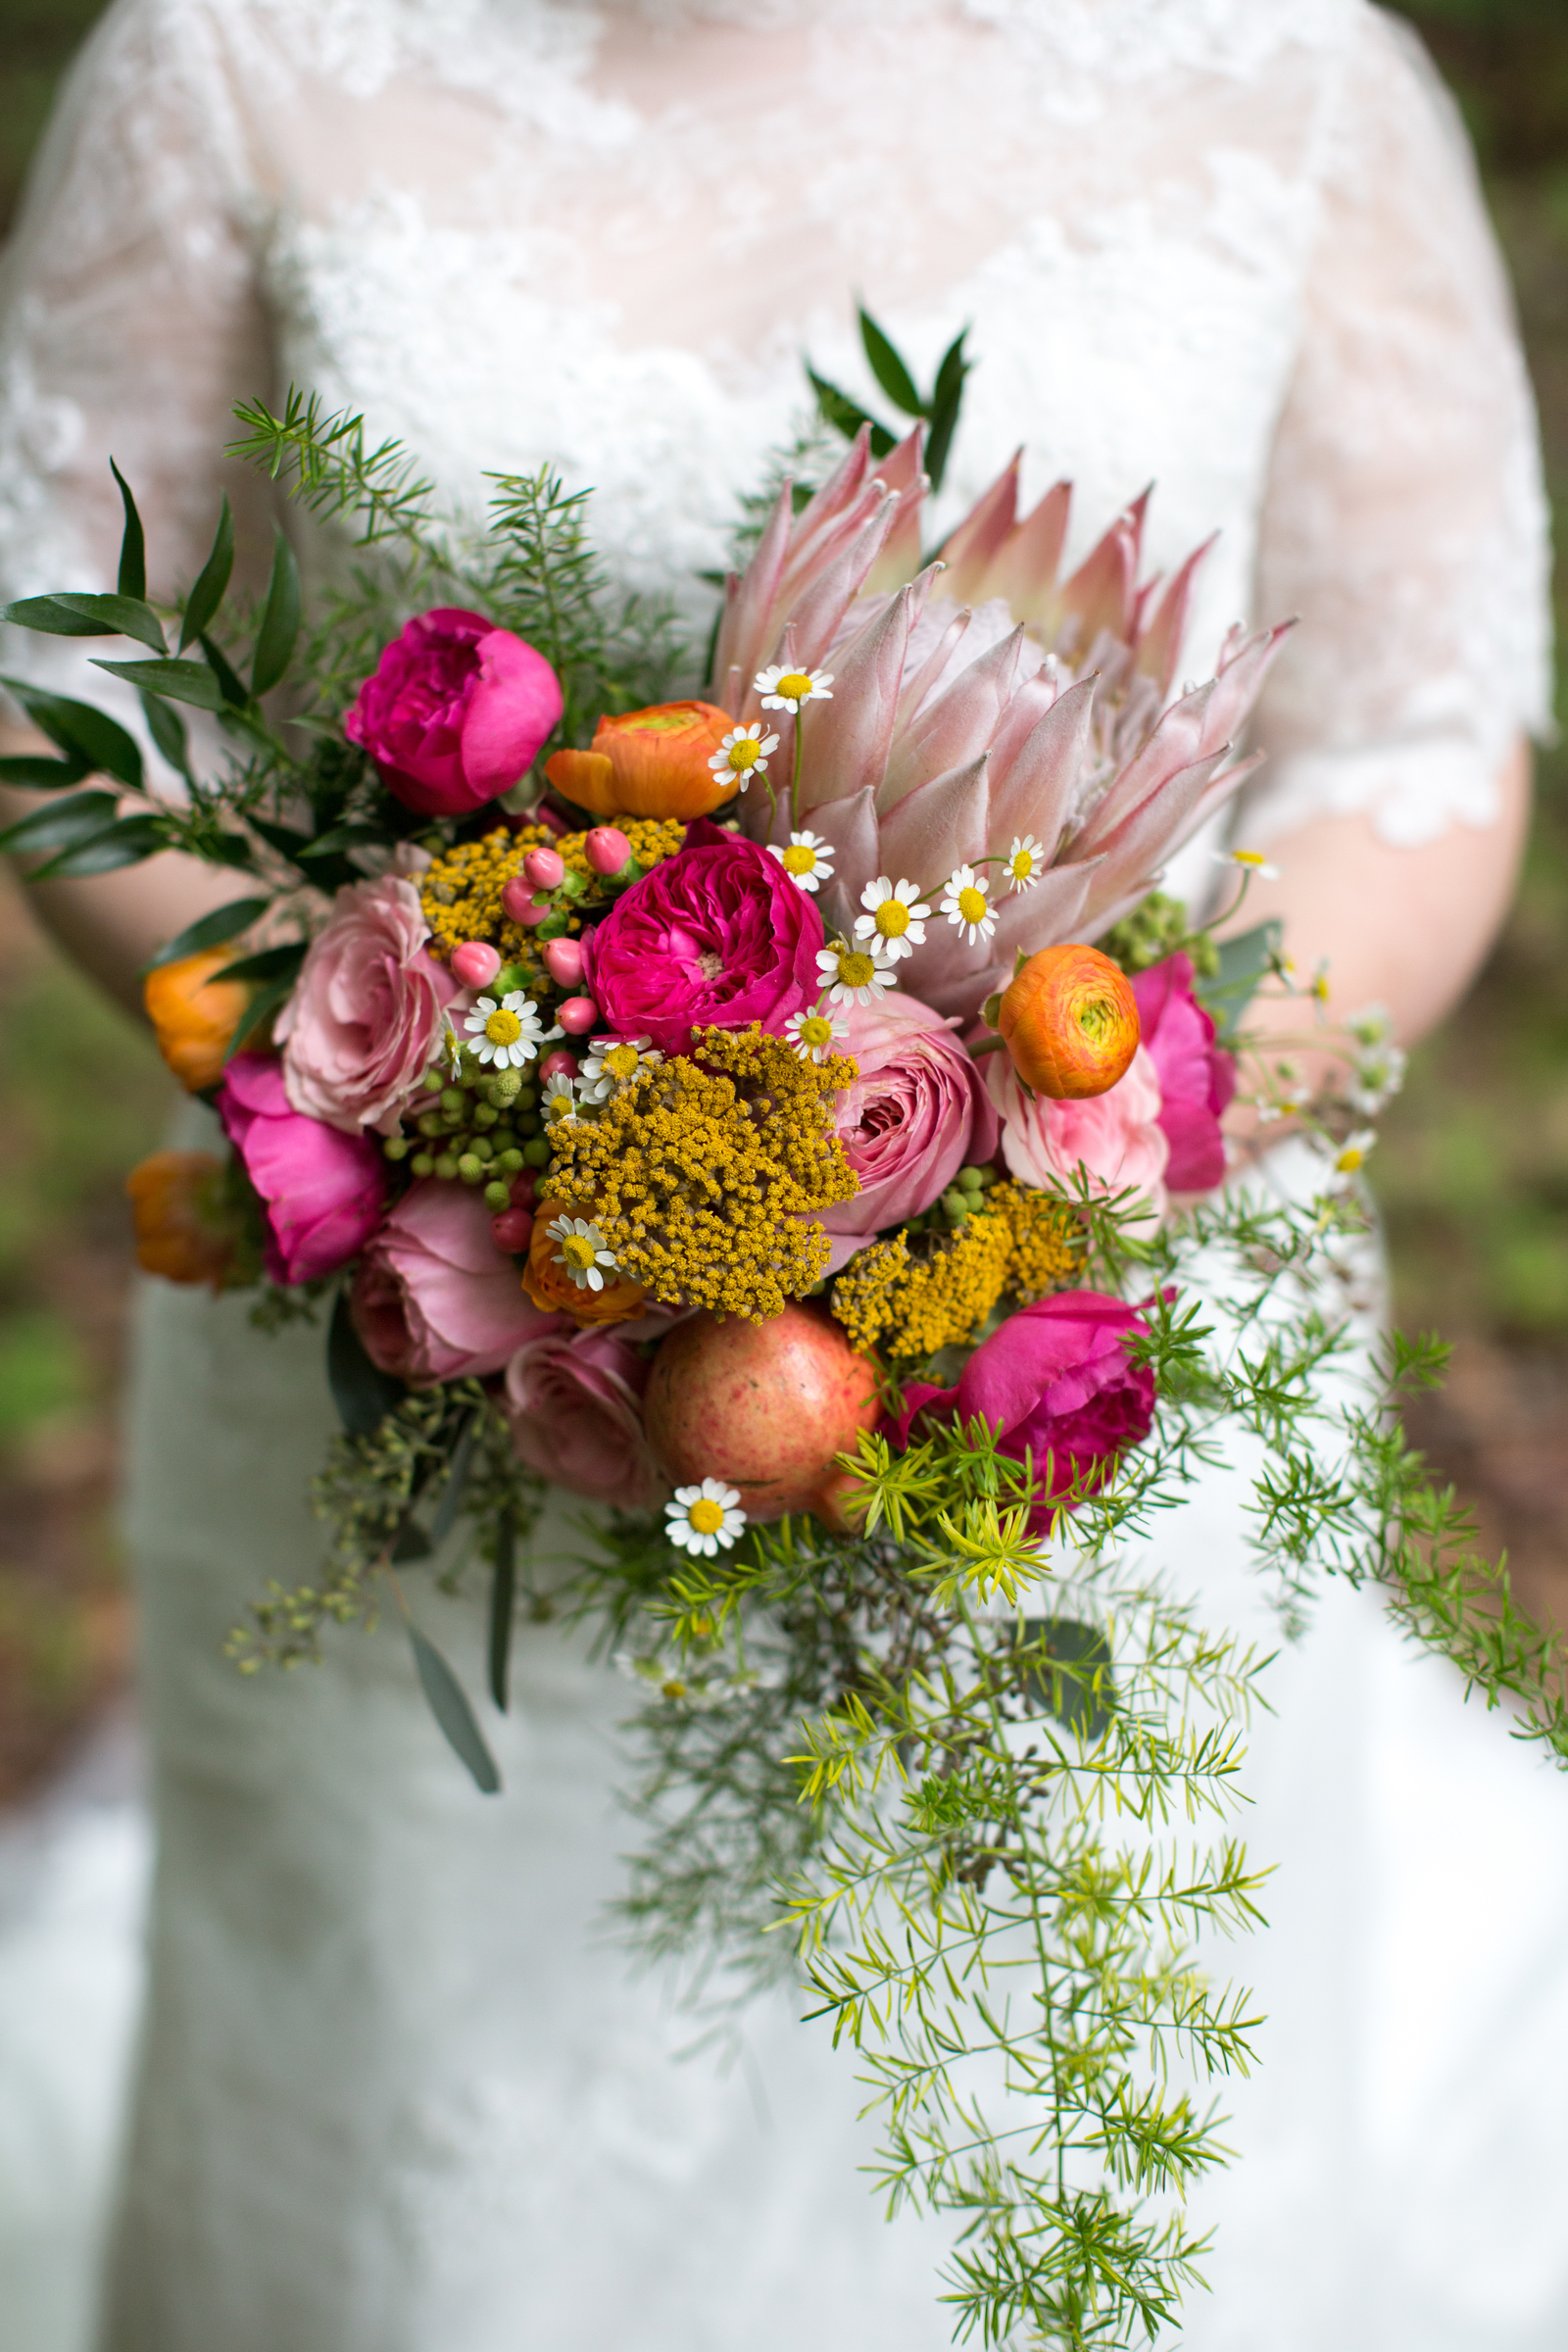 Bridal Bouquet with King Protea, Garden Roses, and Ranunculus